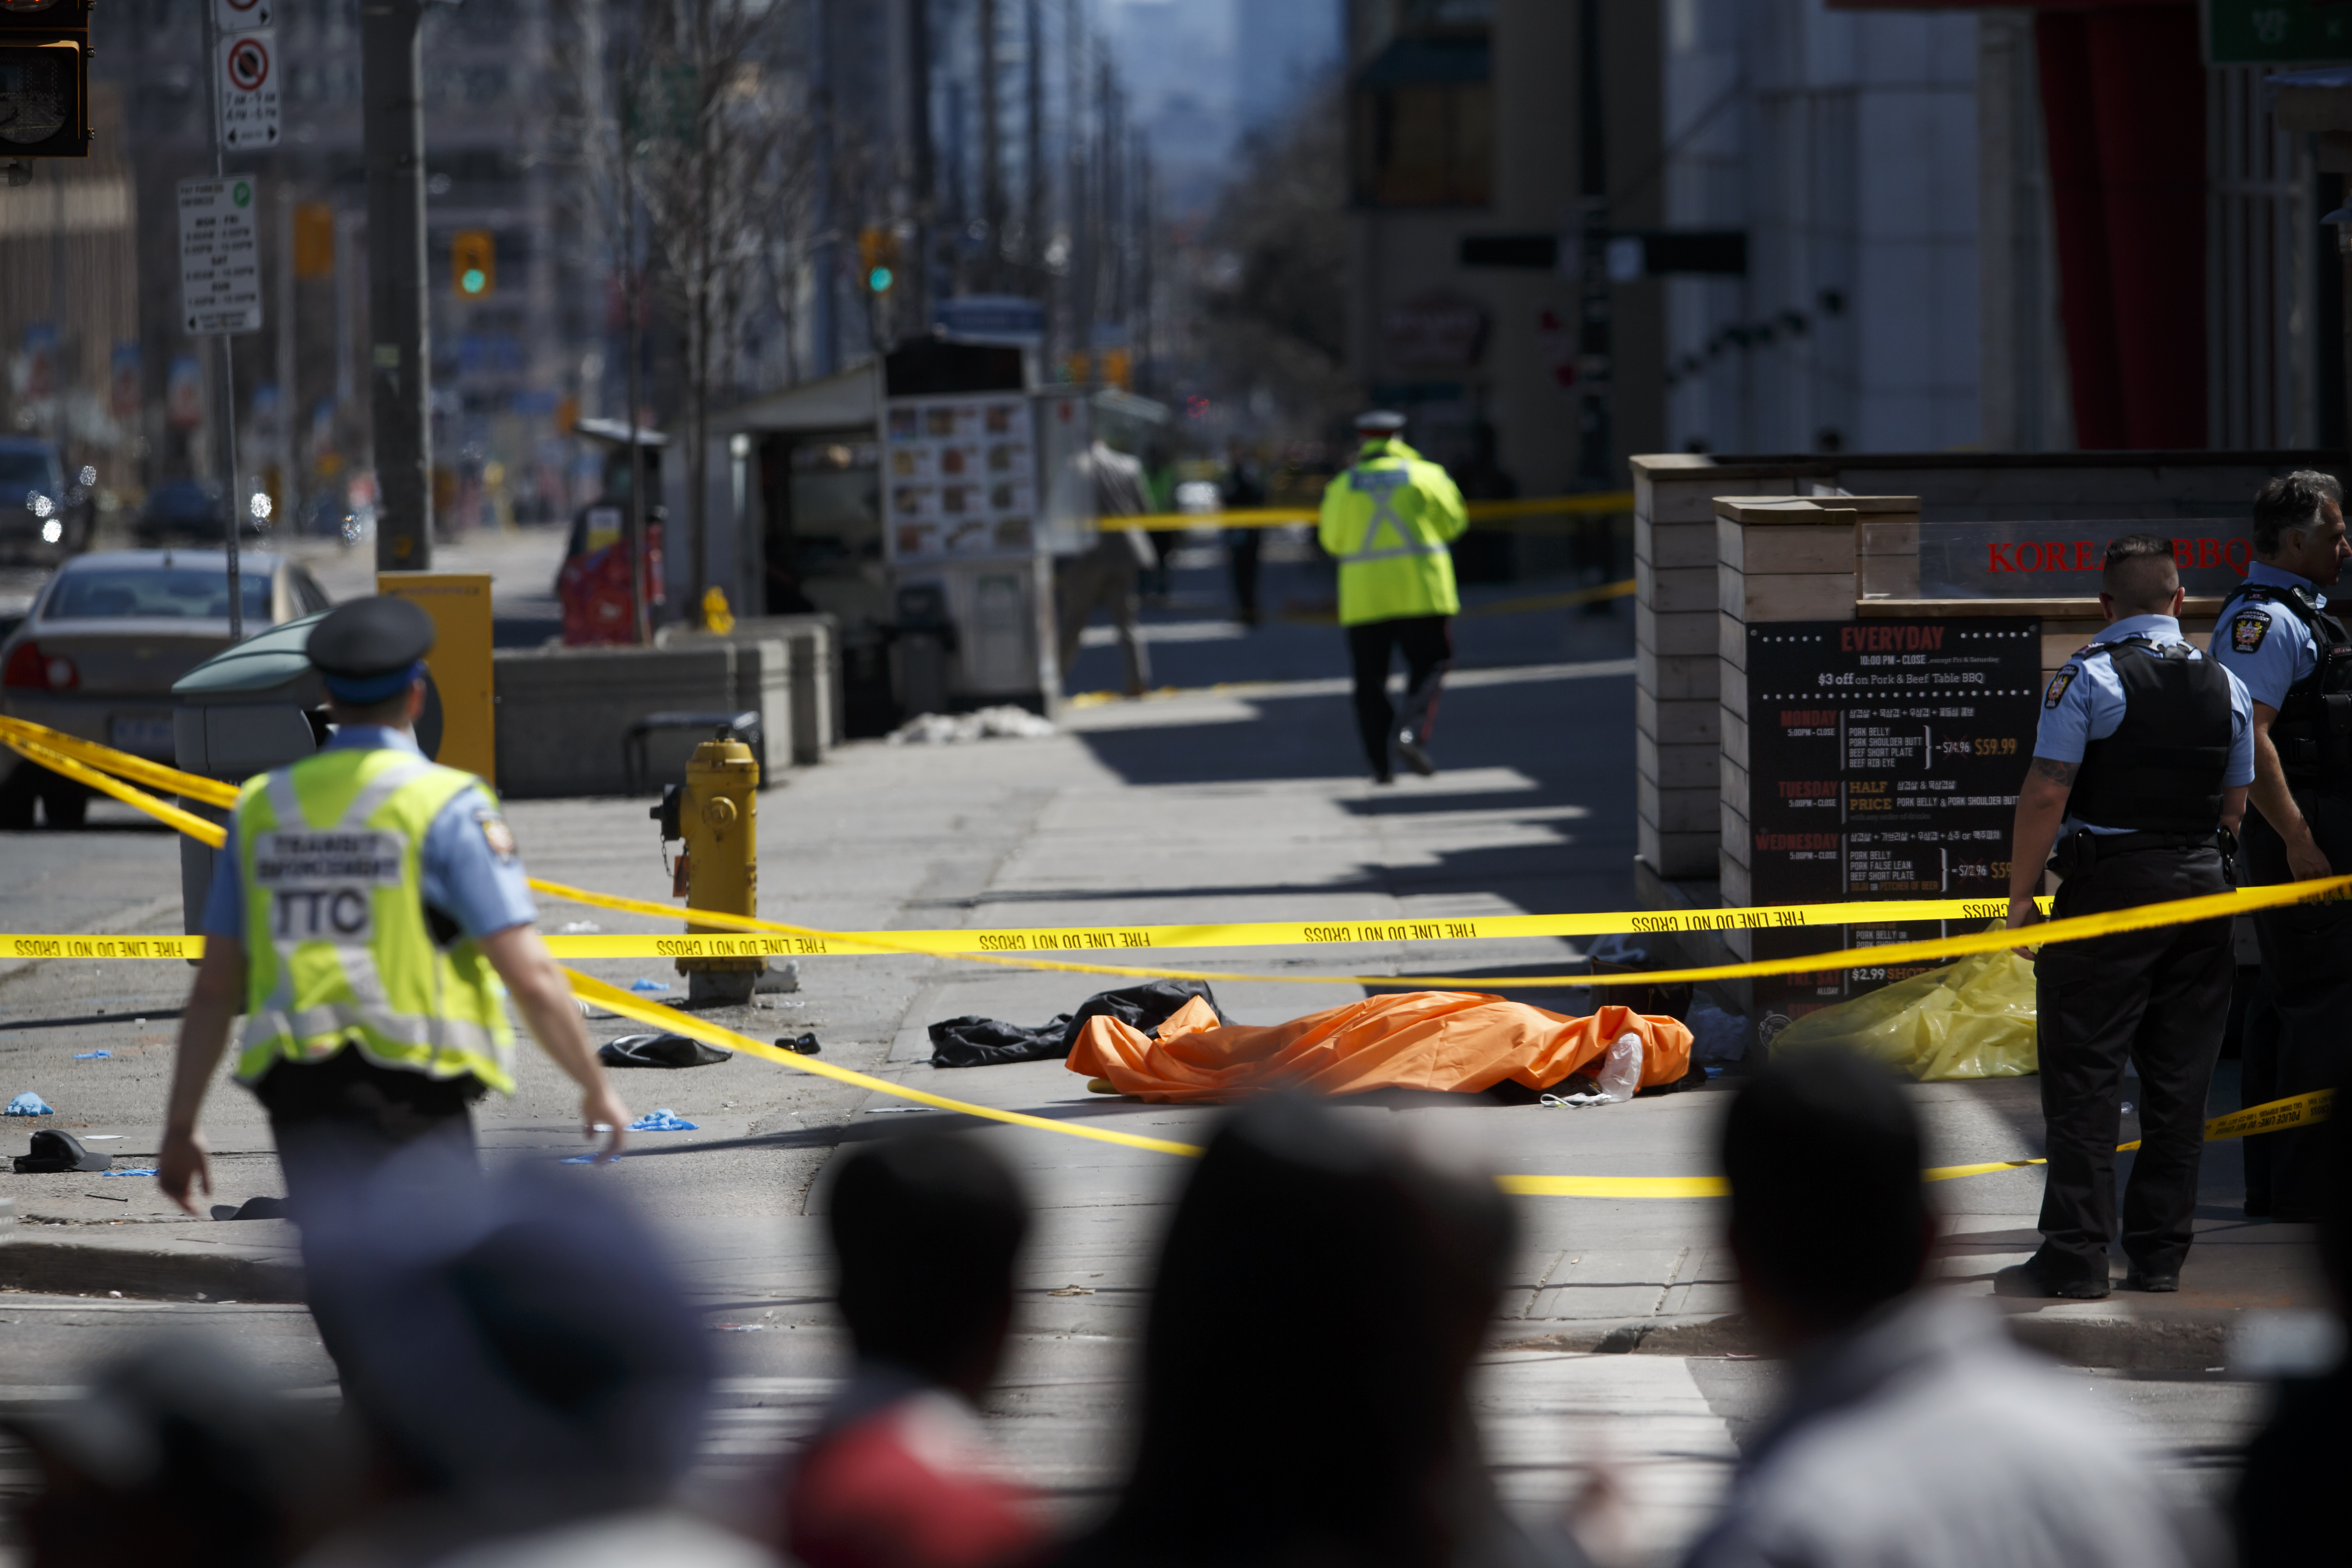 A tarp lays on top of a body on Yonge St. at Finch Ave. after a van plowed into pedestrians on April 23, 2018 in Toronto, Canada. (Photo by Cole Burston/Getty Images)